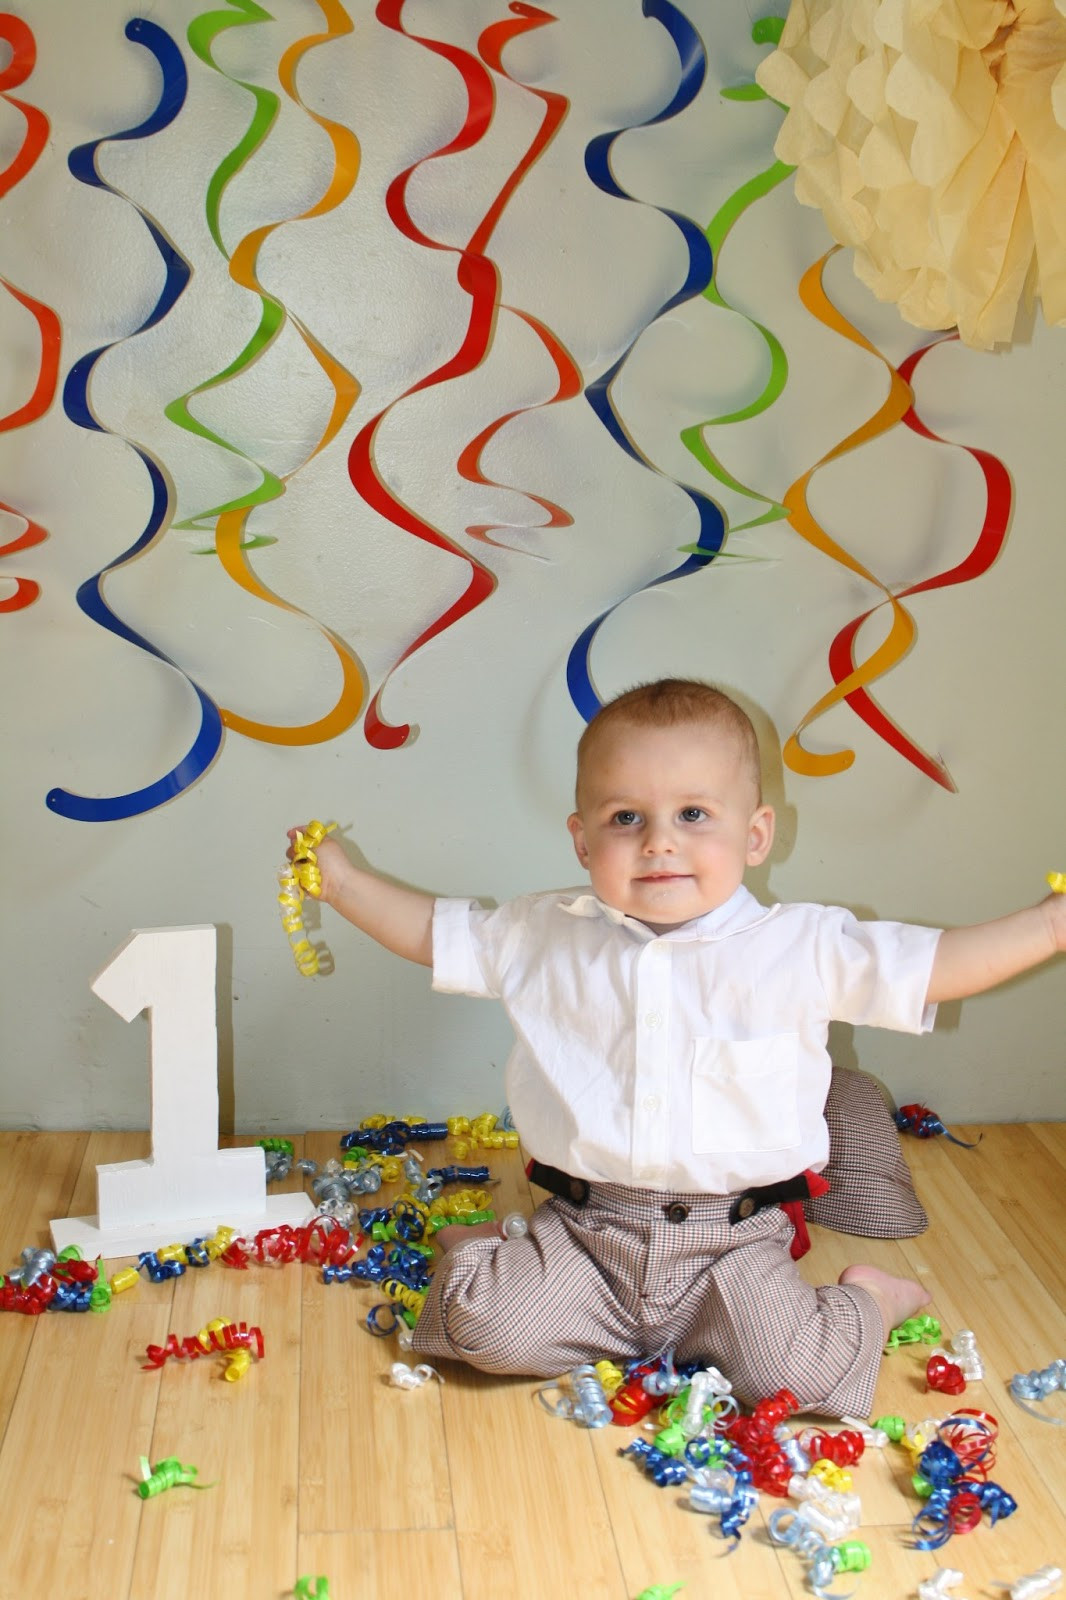 Best ideas about Baby First Birthday Decorations . Save or Pin Sweet Pea and Pumkins 1st Birthday Baby Boy and Party Now.